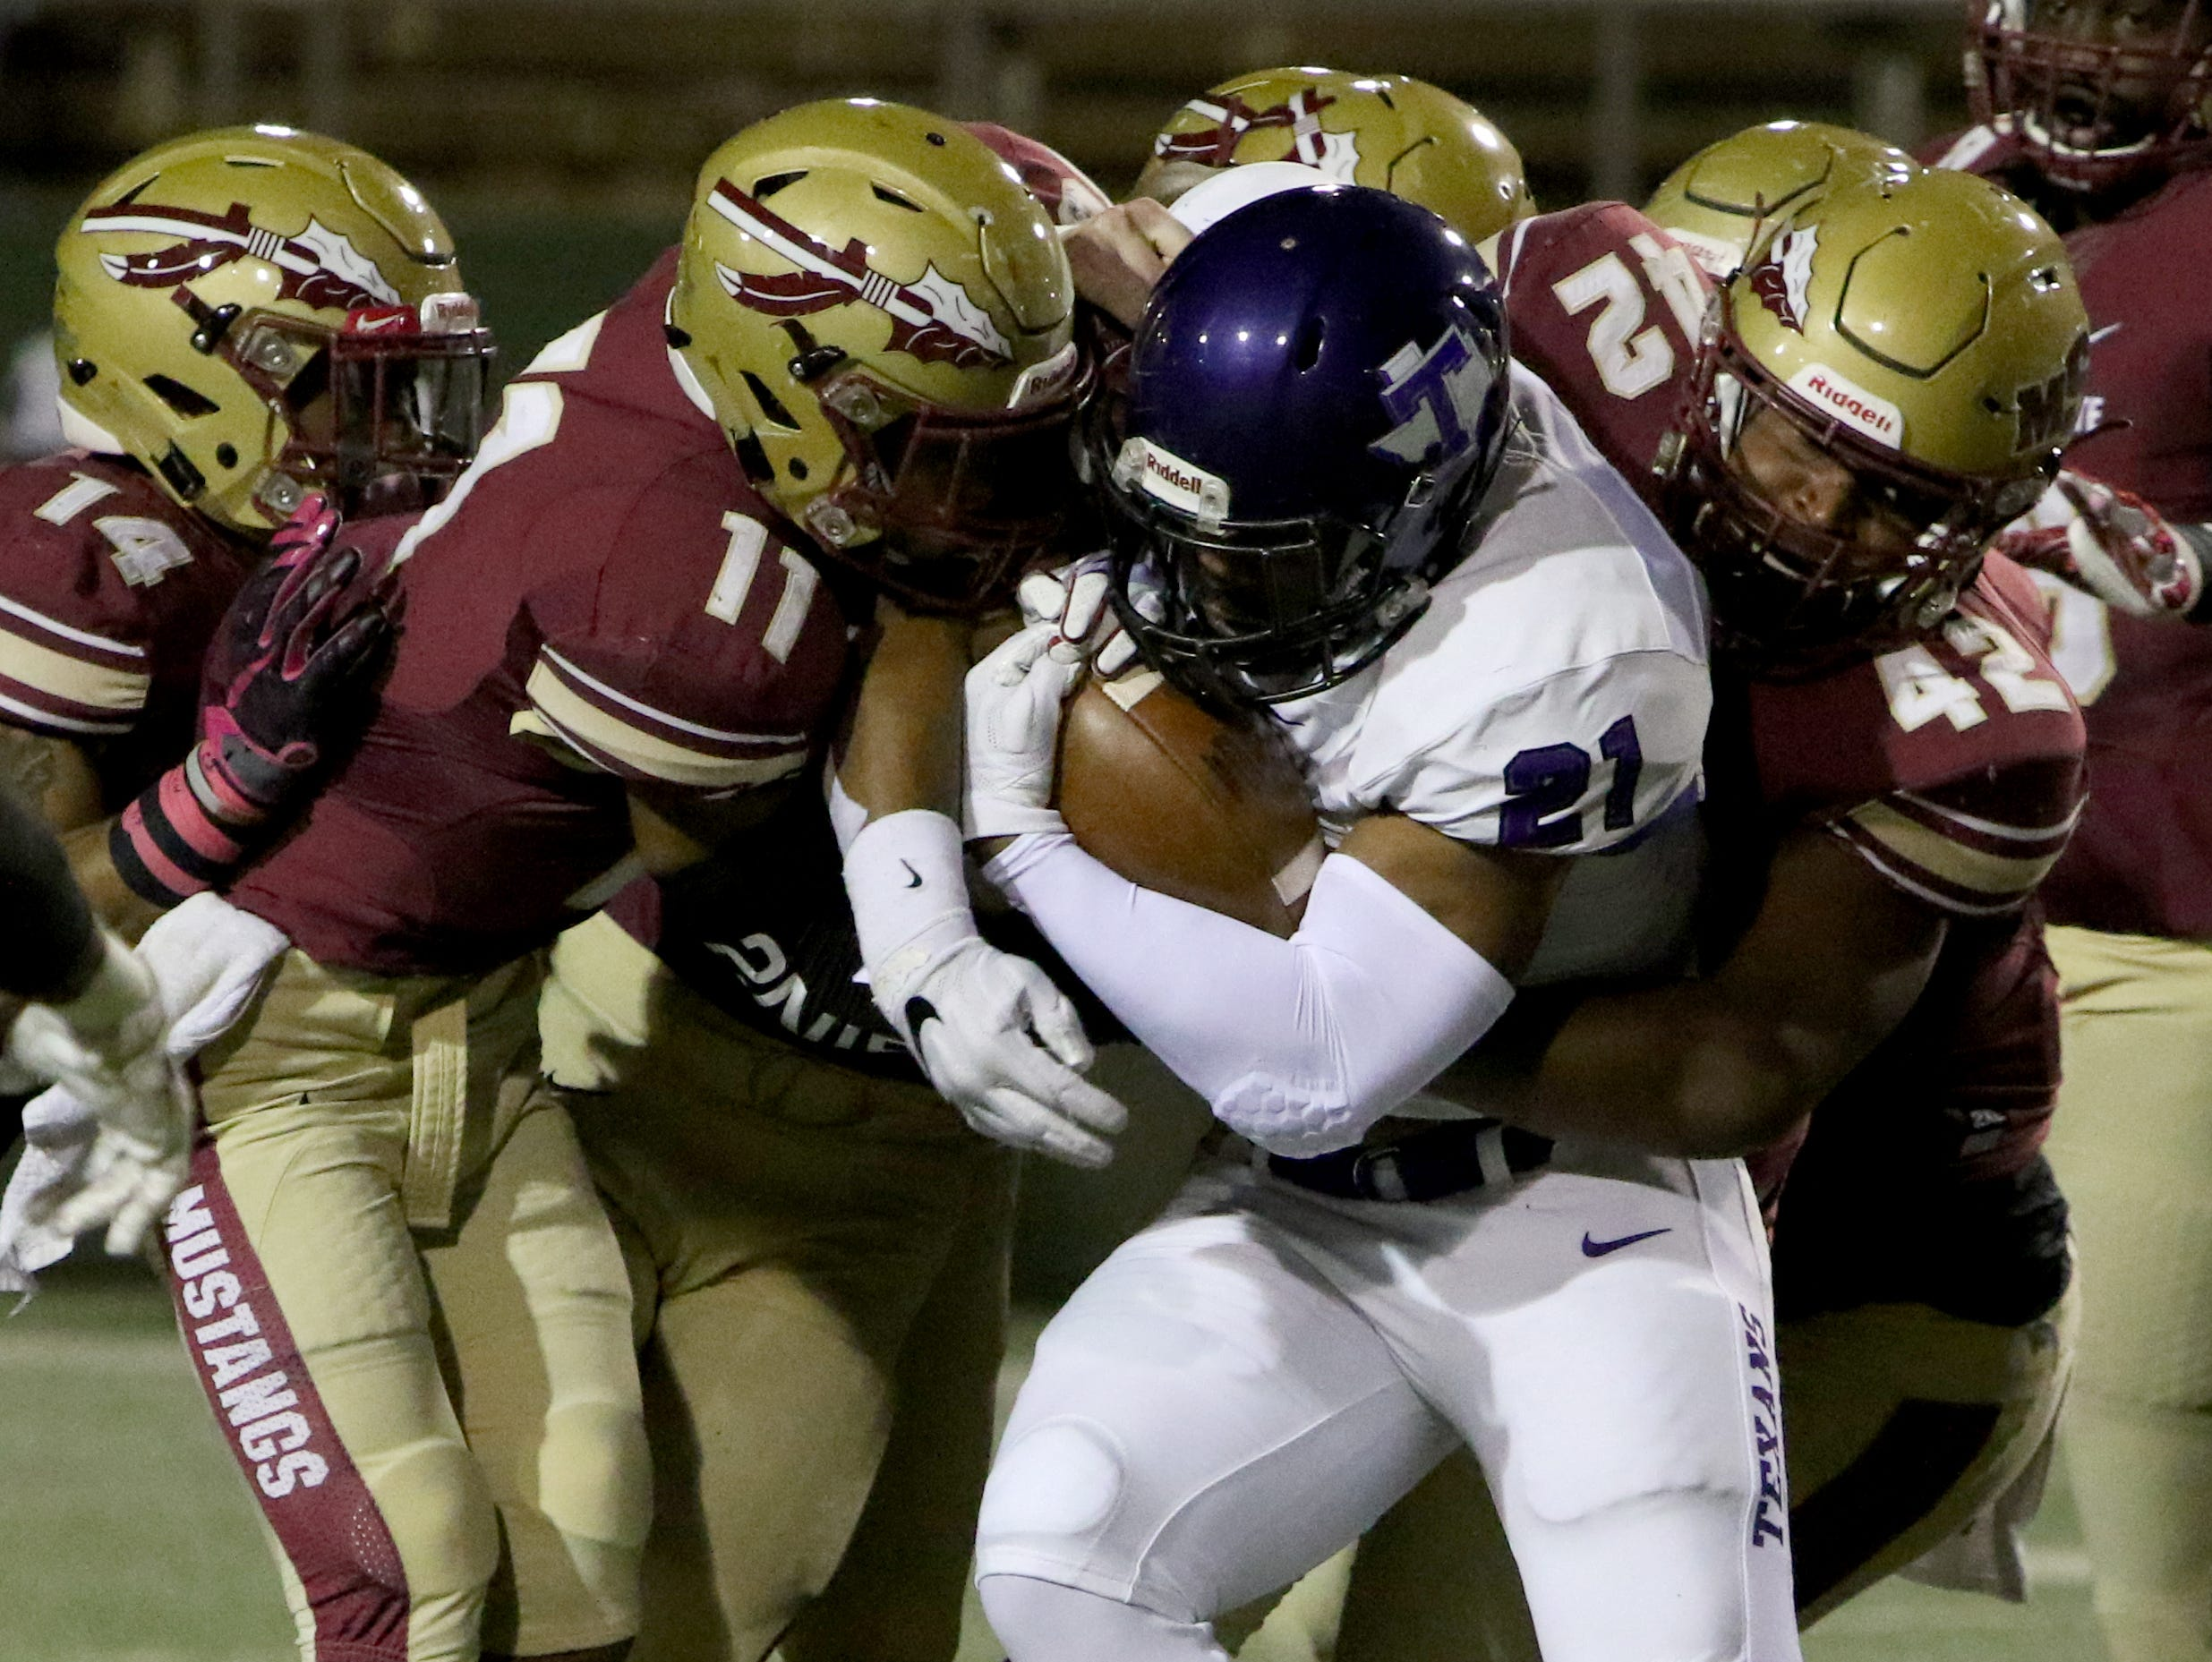 Tarleton's Zavier Turner is tackled by several Midwestern State defenders Saturday, Oct. 27, 2018, at Memorial Stadium. The Mustangs lost in overtime to the Texans 35-34 after a missed field goal.